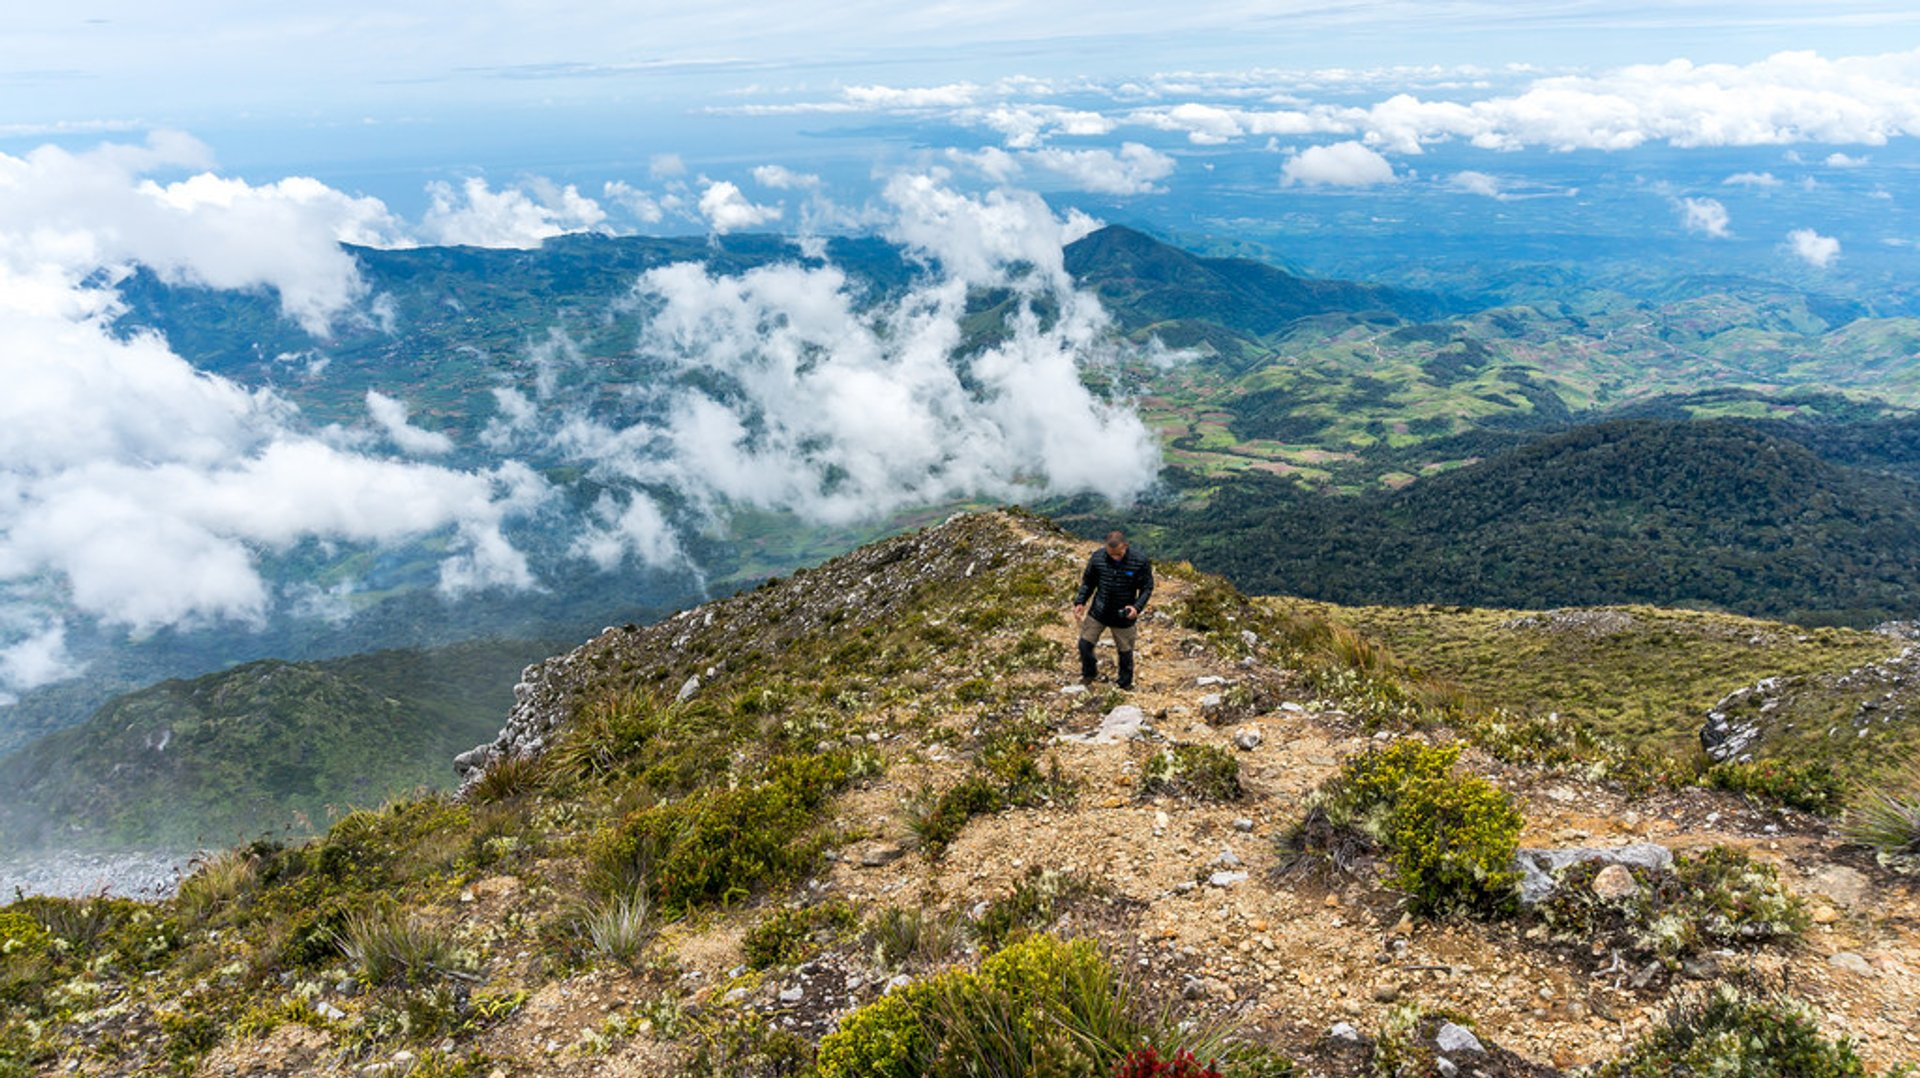 Climbing Mount Apo in Philippines - Best Time